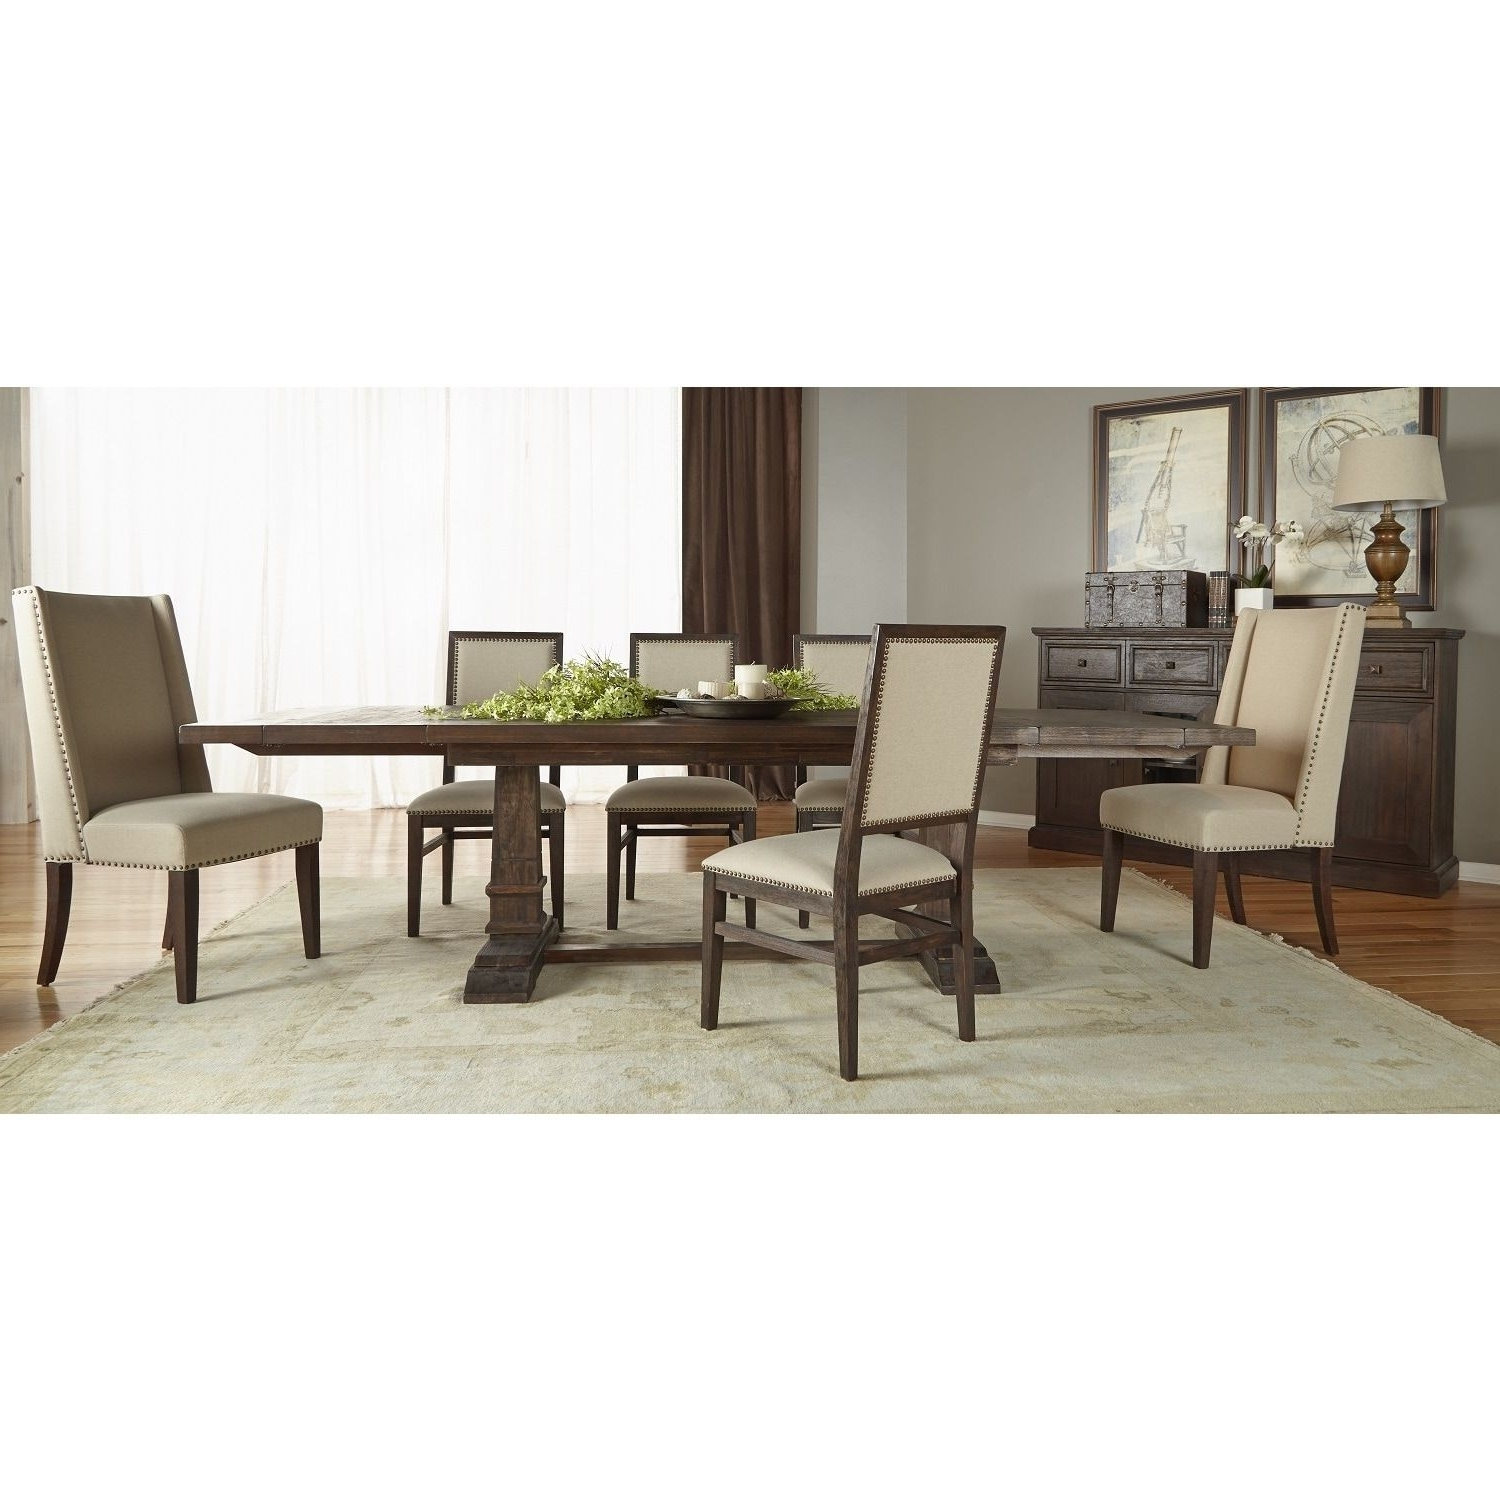 Chandler 7 Piece Extension Dining Sets With Fabric Side Chairs In Recent Gray Manor Harlan Rustic Java Double Pedestal Extension Dining Table (View 8 of 25)